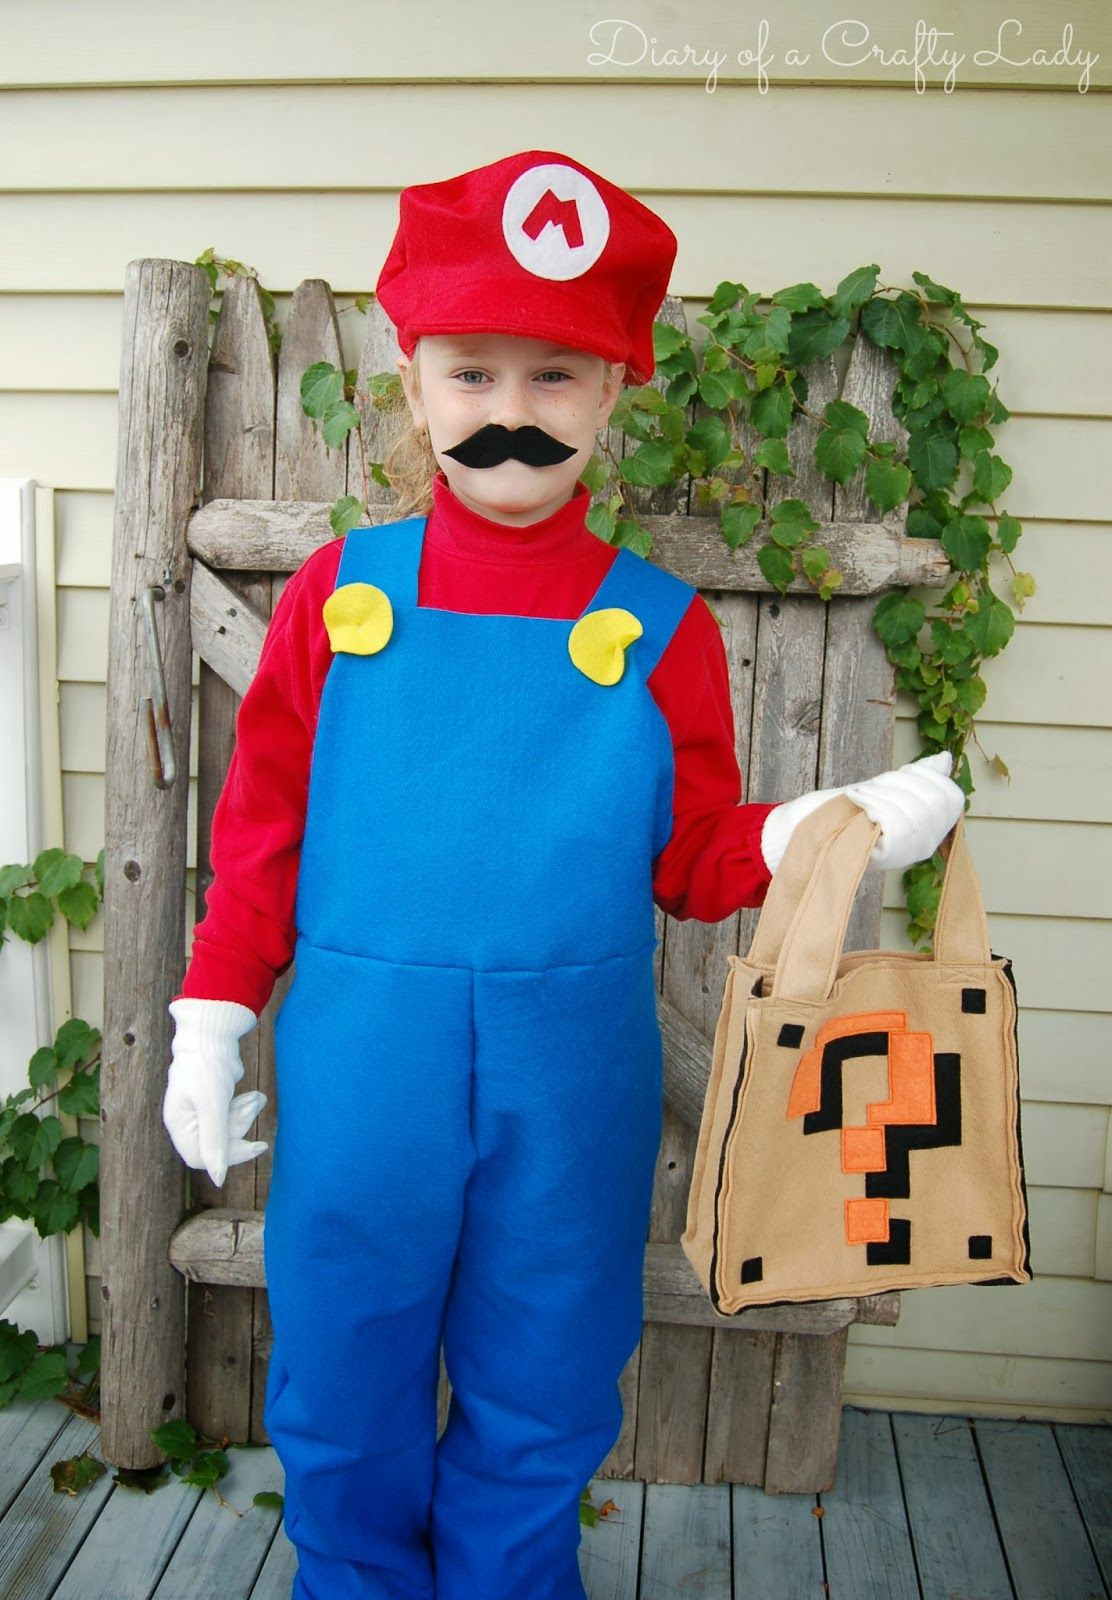 diary of a crafty lady: super mario brothers custom felt trick-or